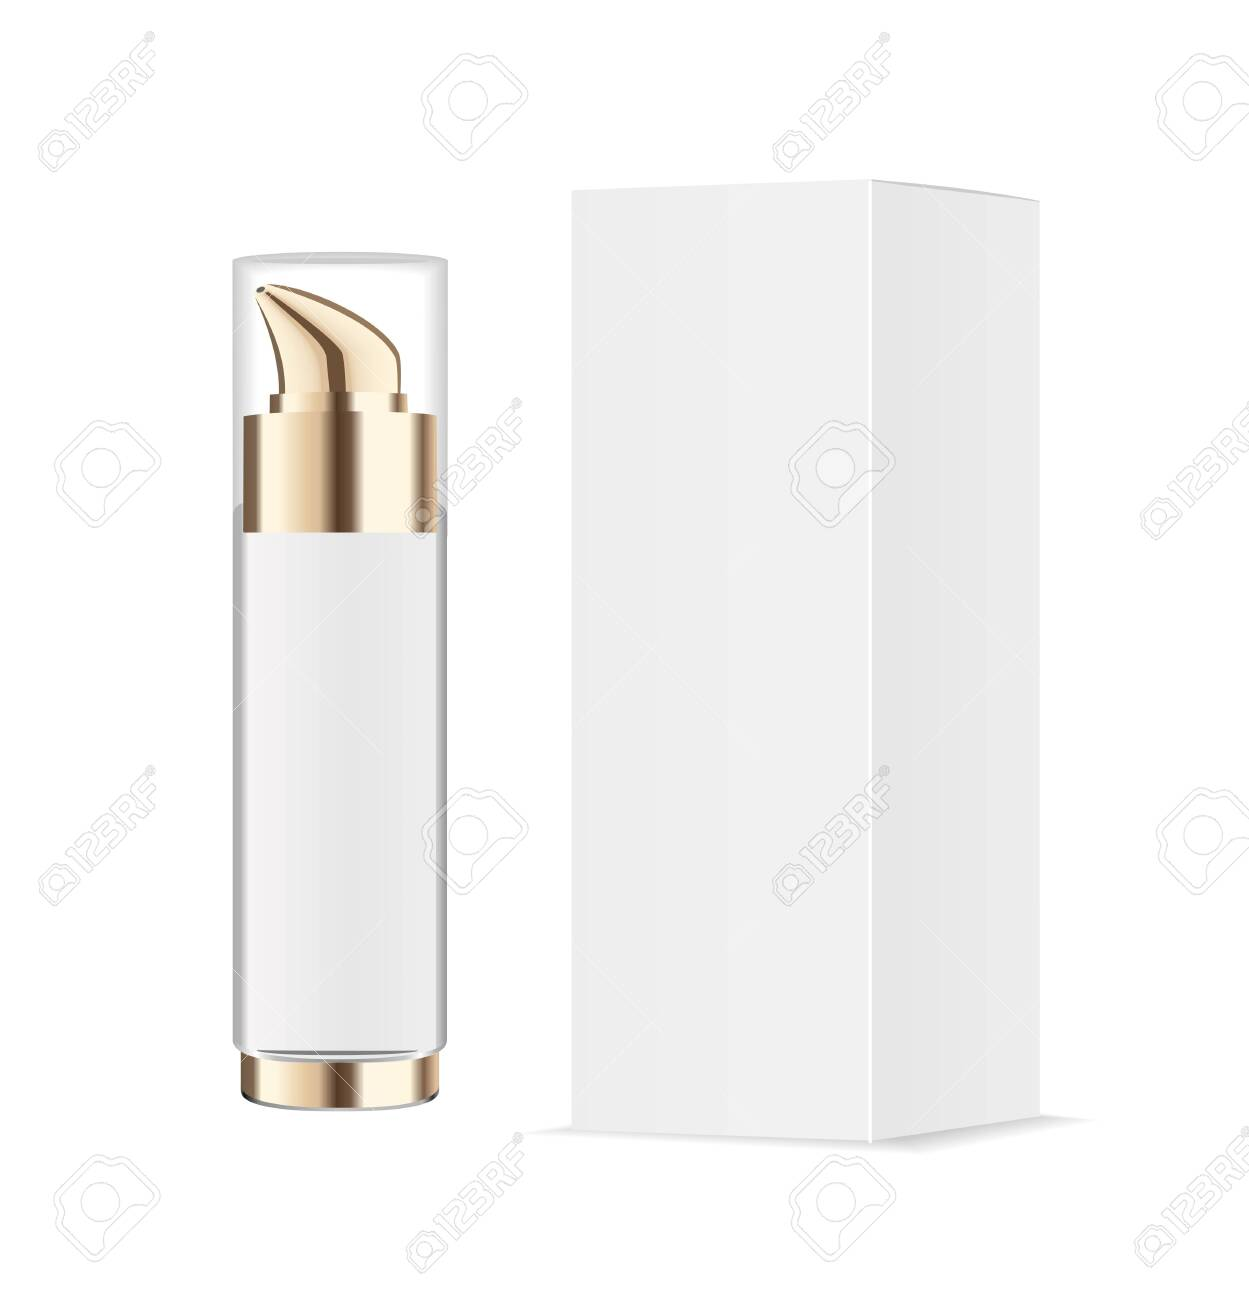 Realistic transparent cosmetic bottle with pump dispenser. White paper package. Vector - 137834645